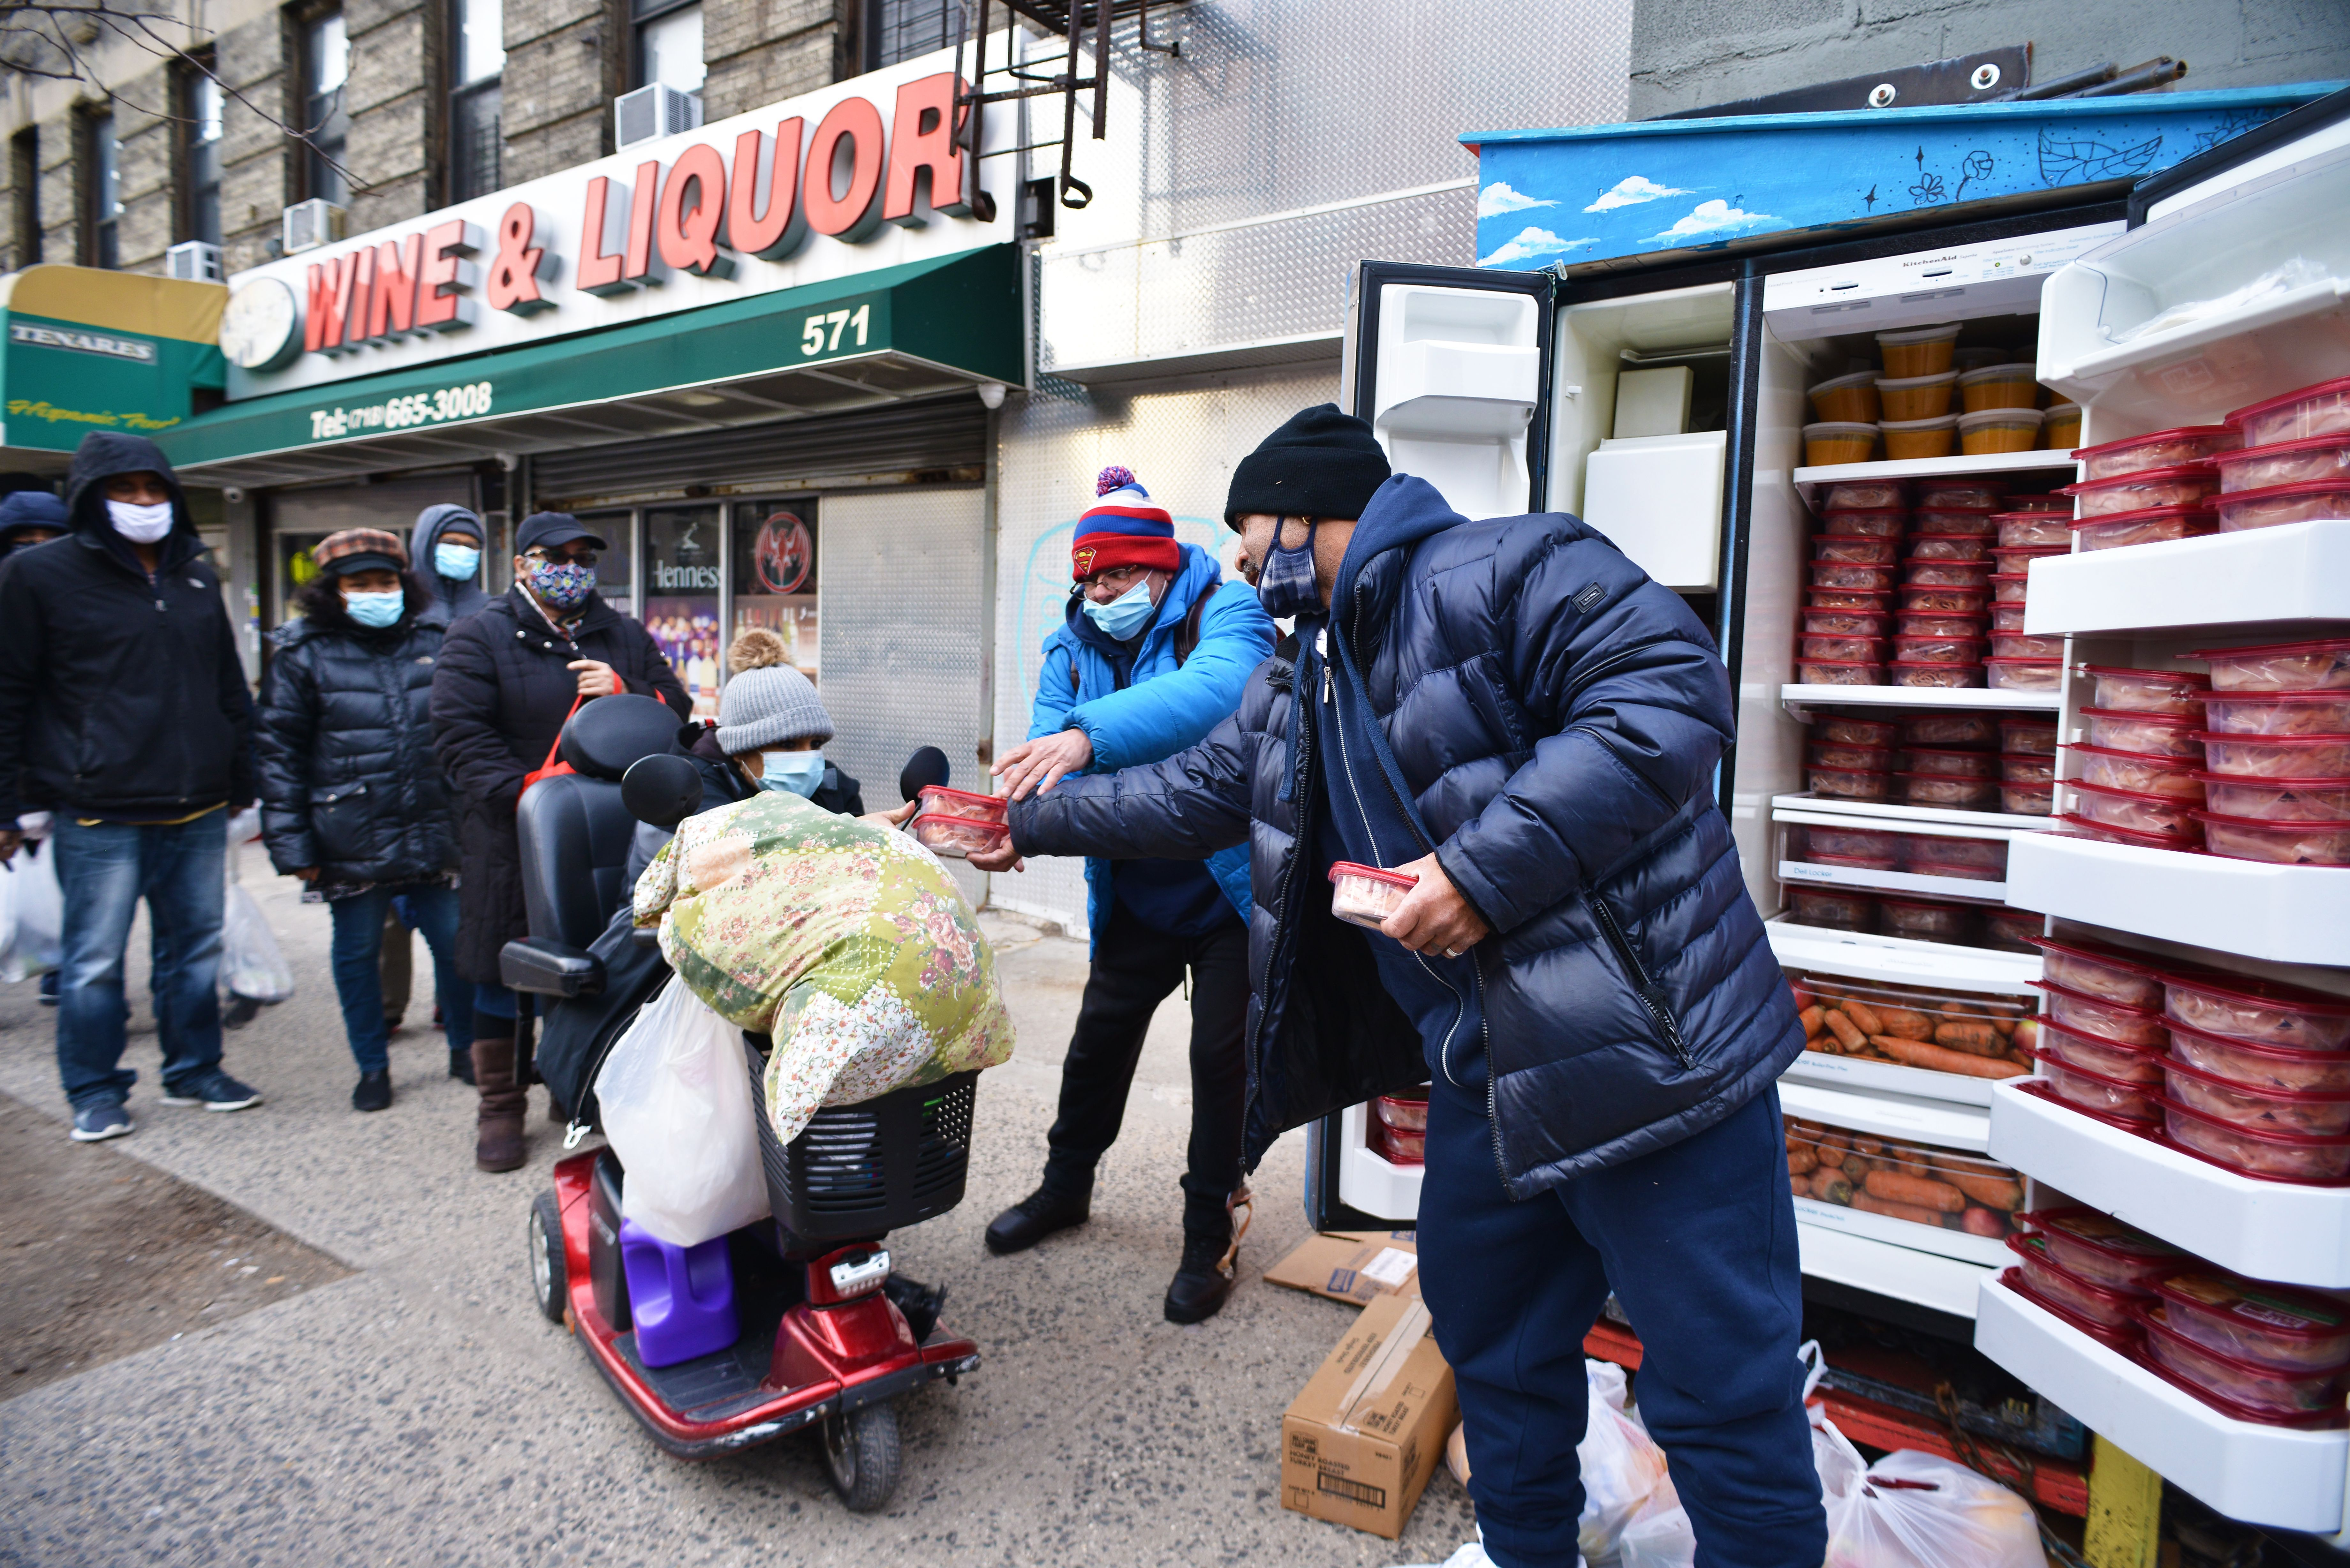 People delivering food to a fridge